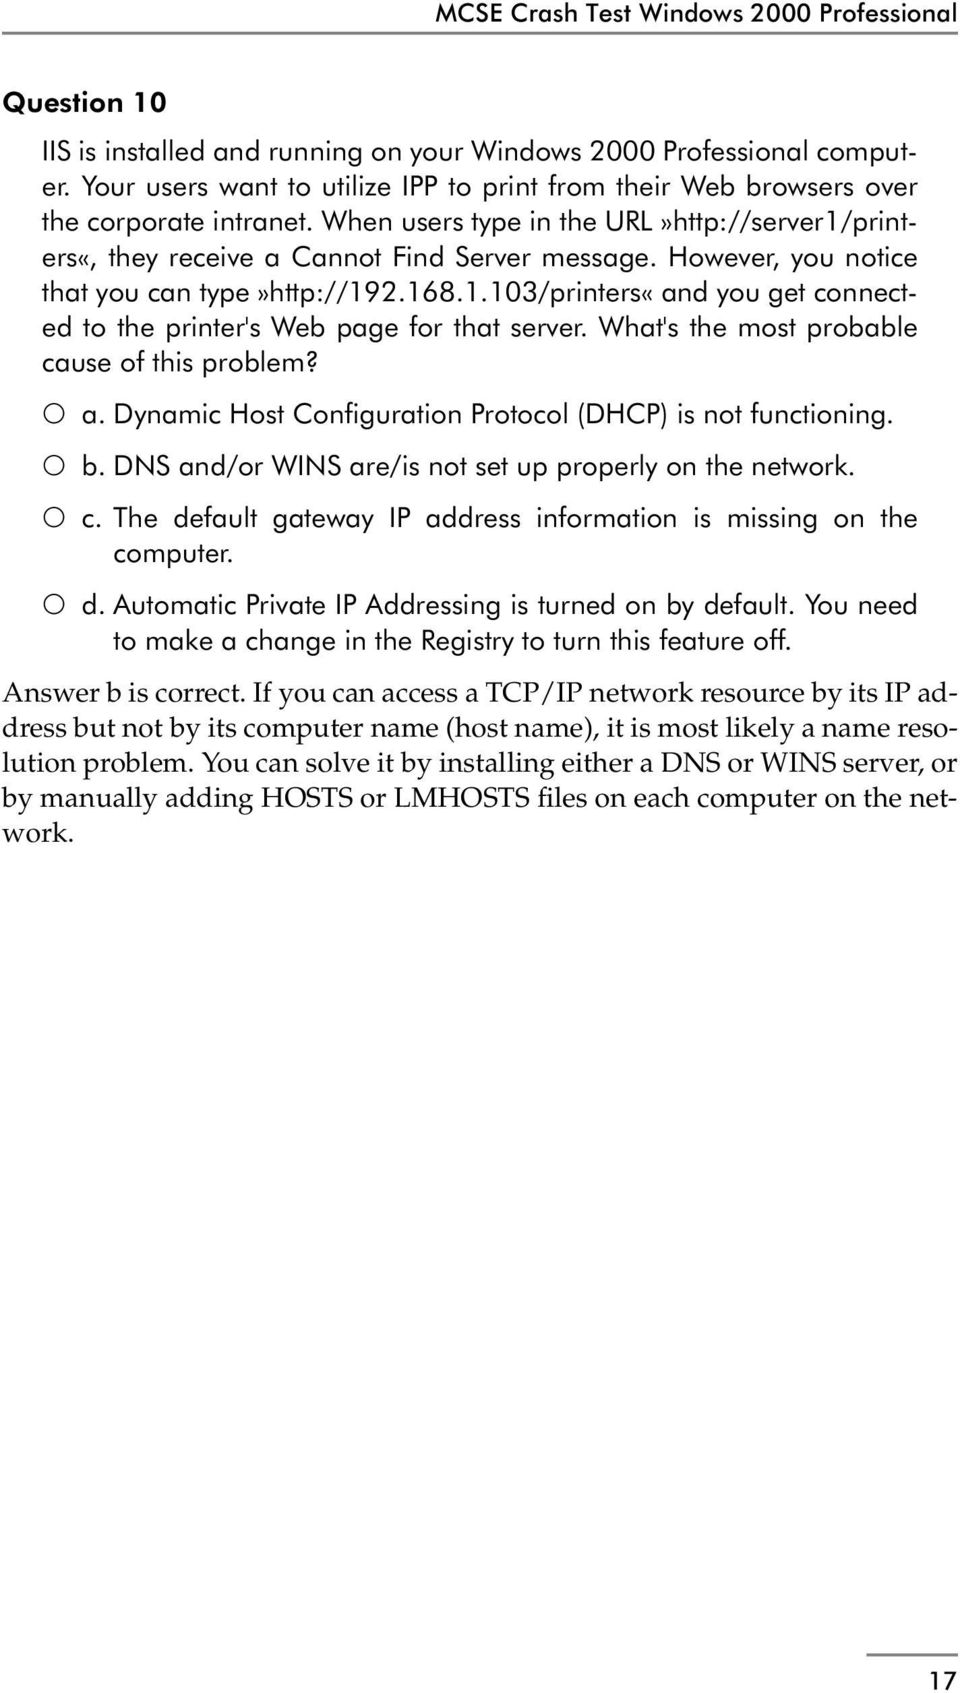 What's the most probable cause of this problem? a. Dynamic Host Configuration Protocol (DHCP) is not functioning. b. DNS and/or WINS are/is not set up properly on the network. c. The default gateway IP address information is missing on the computer.